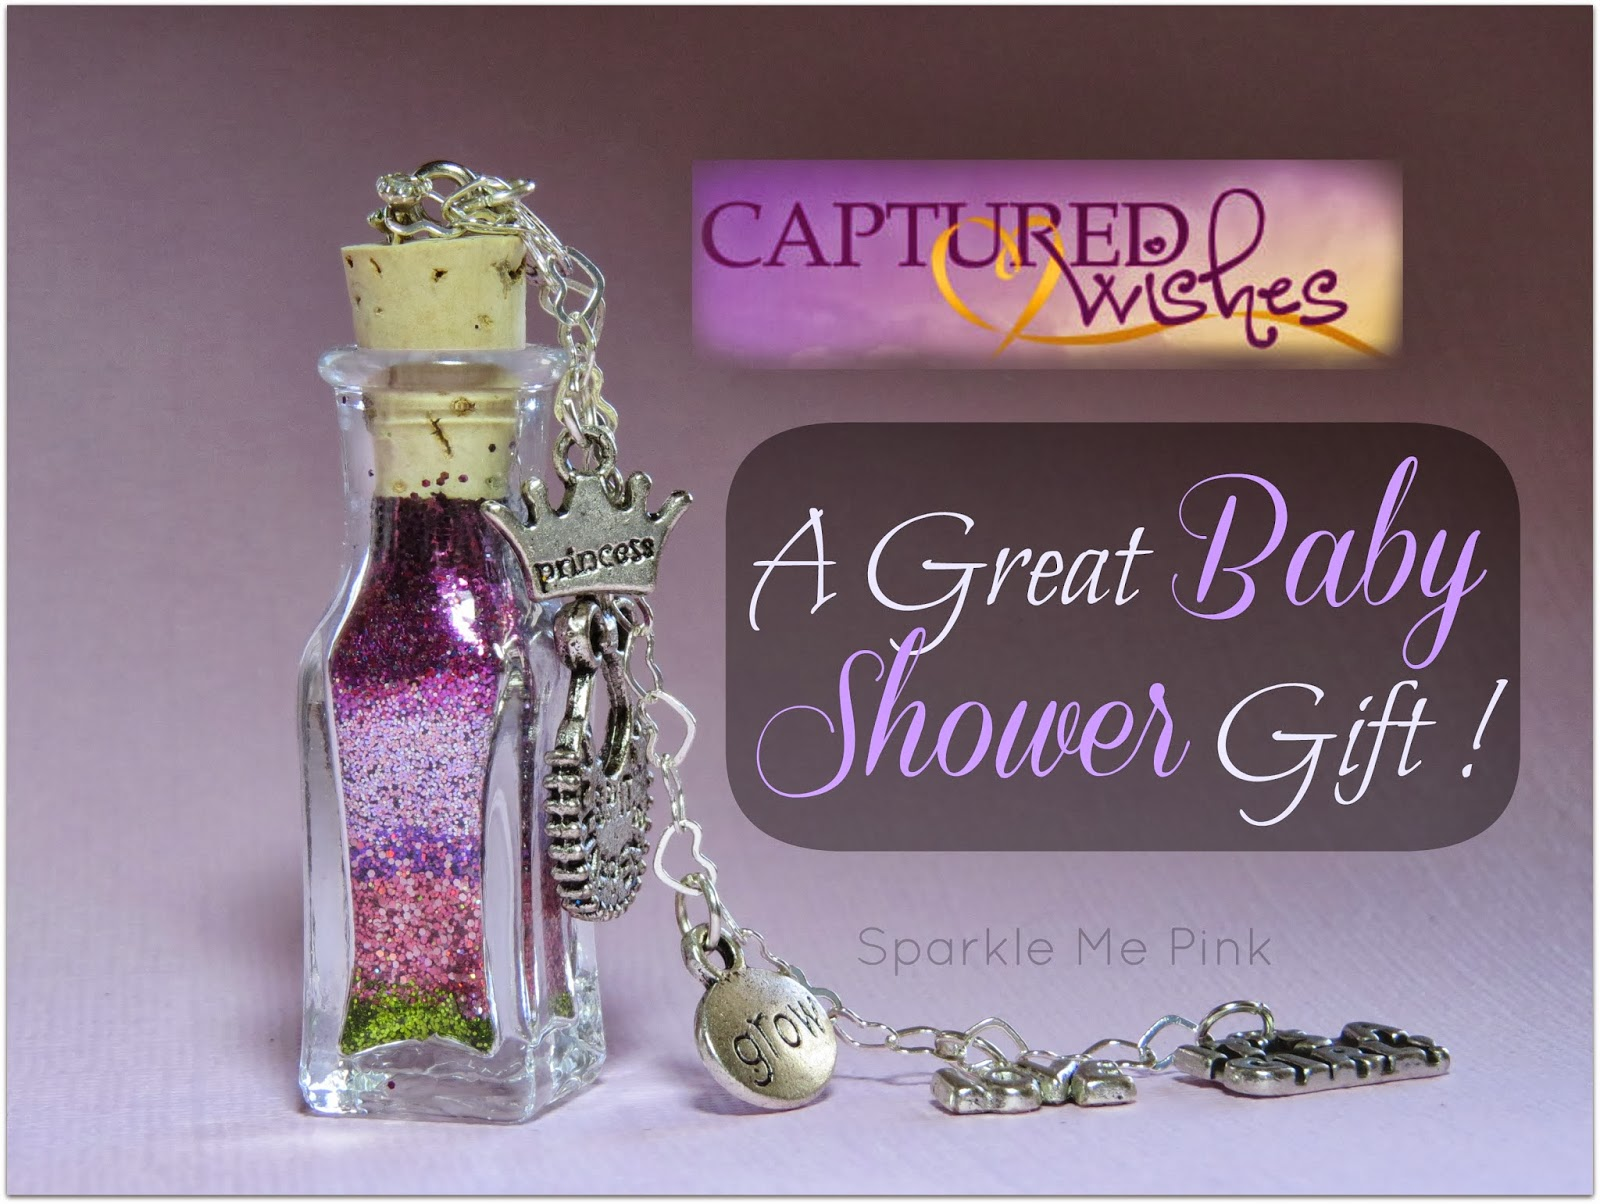 sparkle me pink captured wishes  gift for new baby review, Baby shower